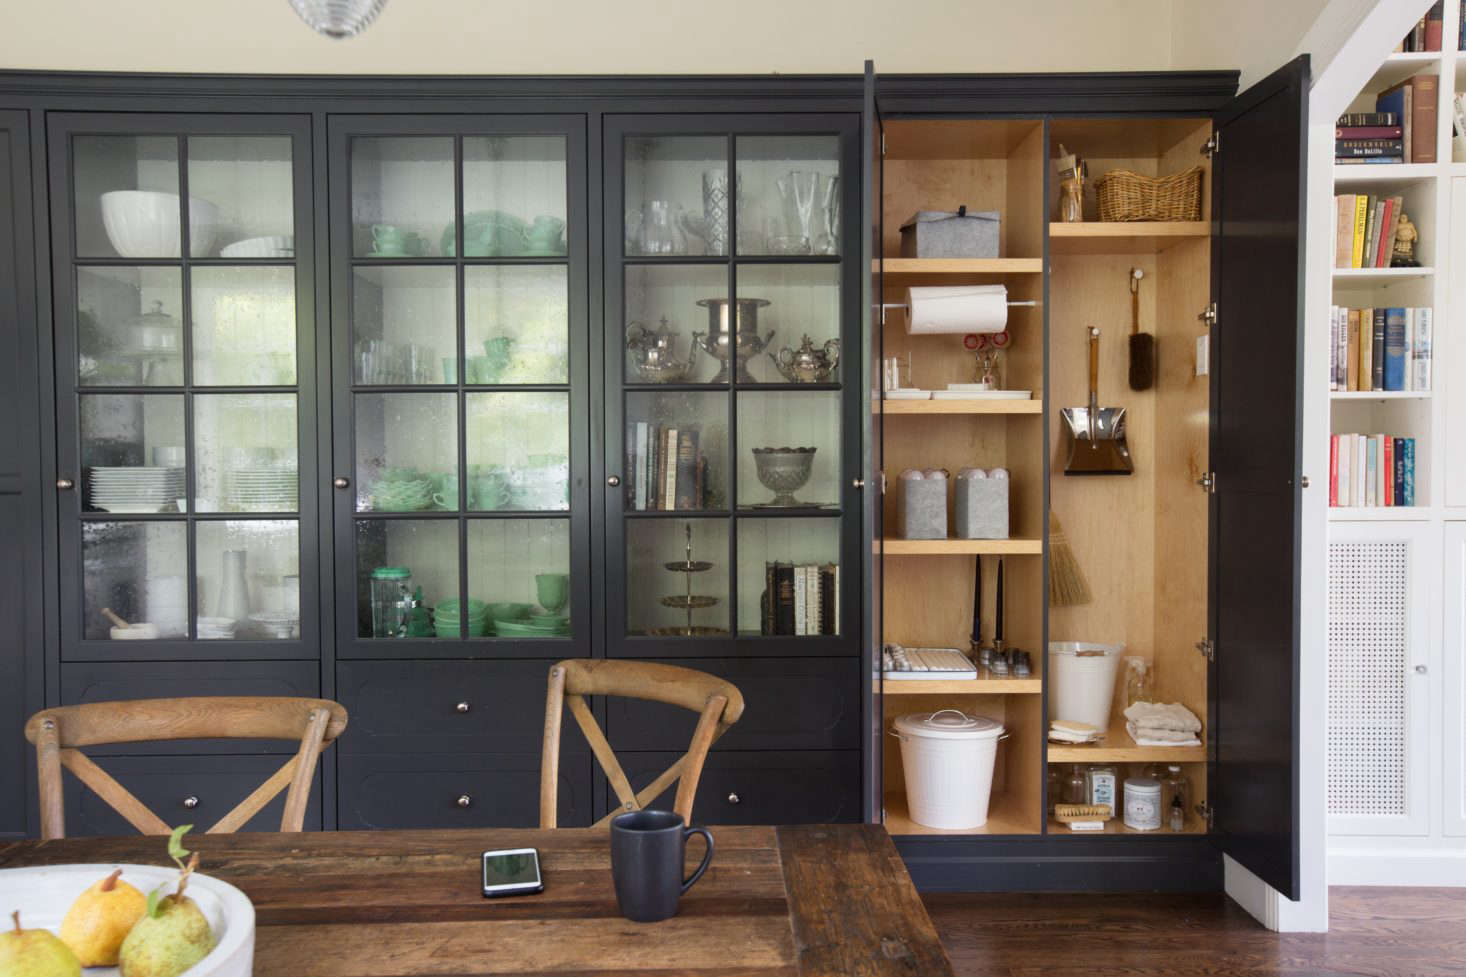 Plenty of storage, even without an island. Photograph by Mimi Giboin from What's Inside: The Stealth Utility Closet.